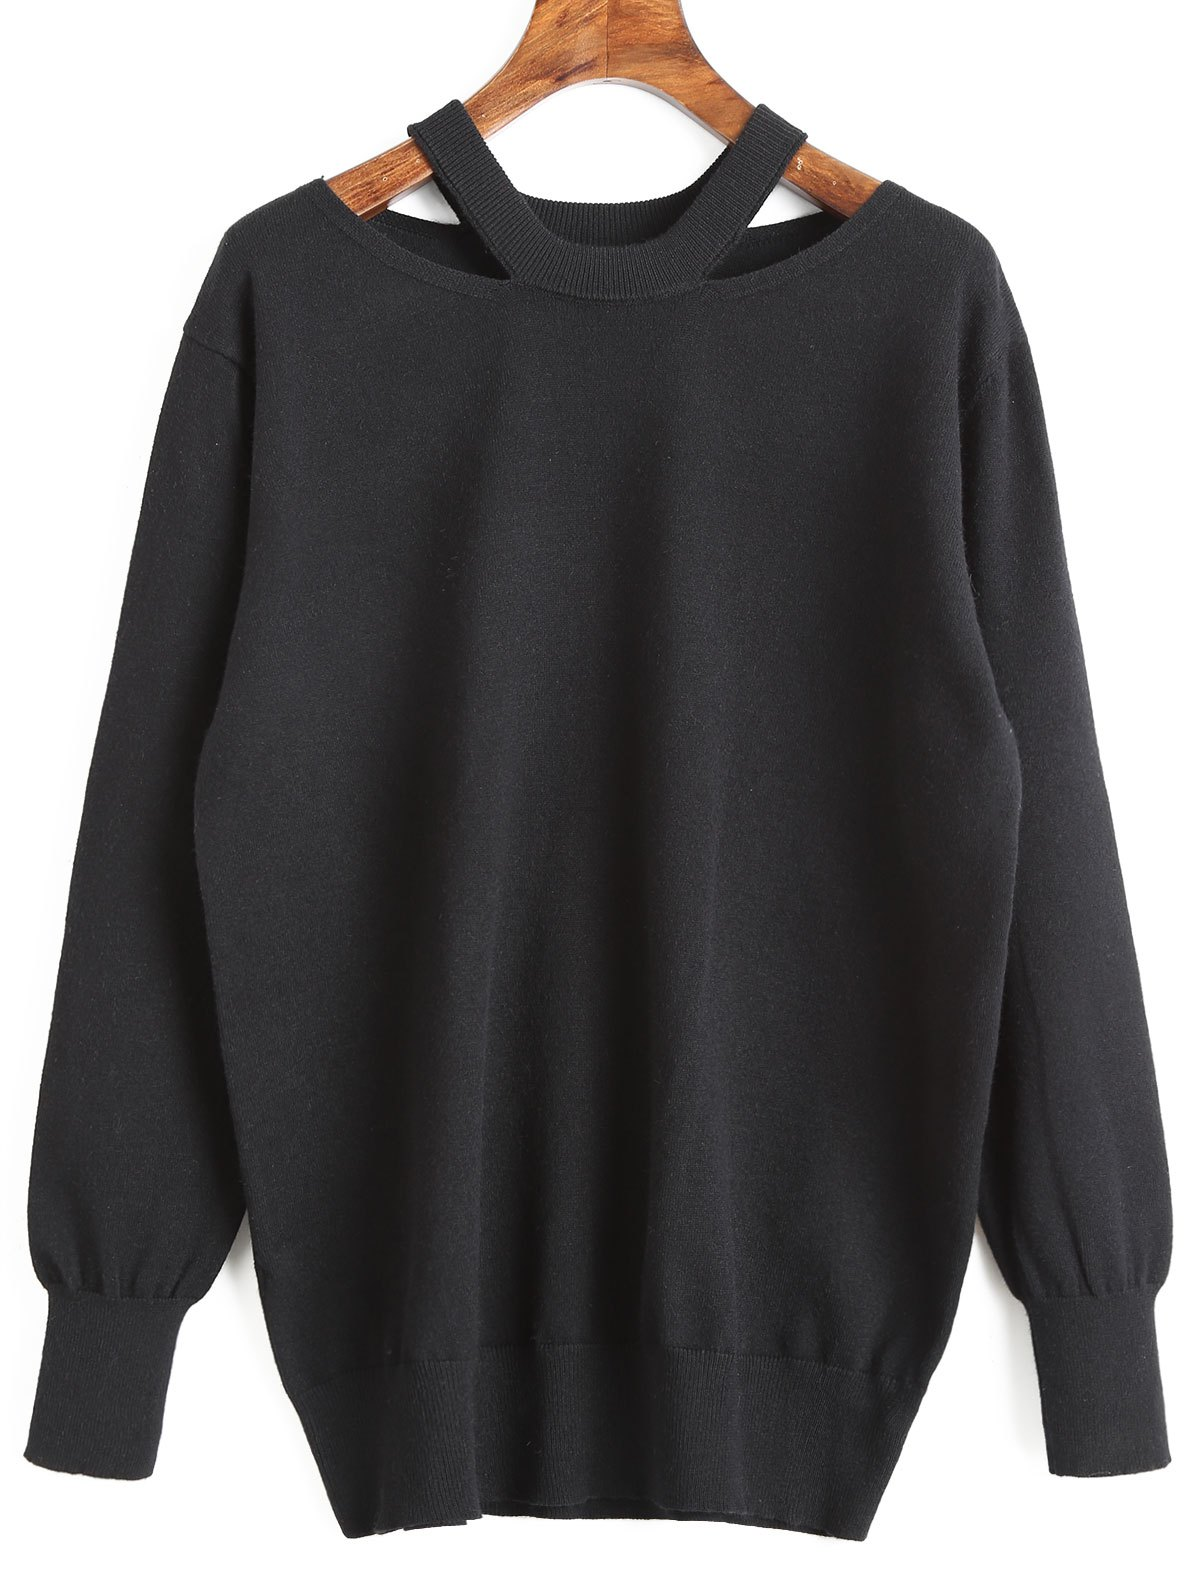 Store Cut Out Tunic Sweater